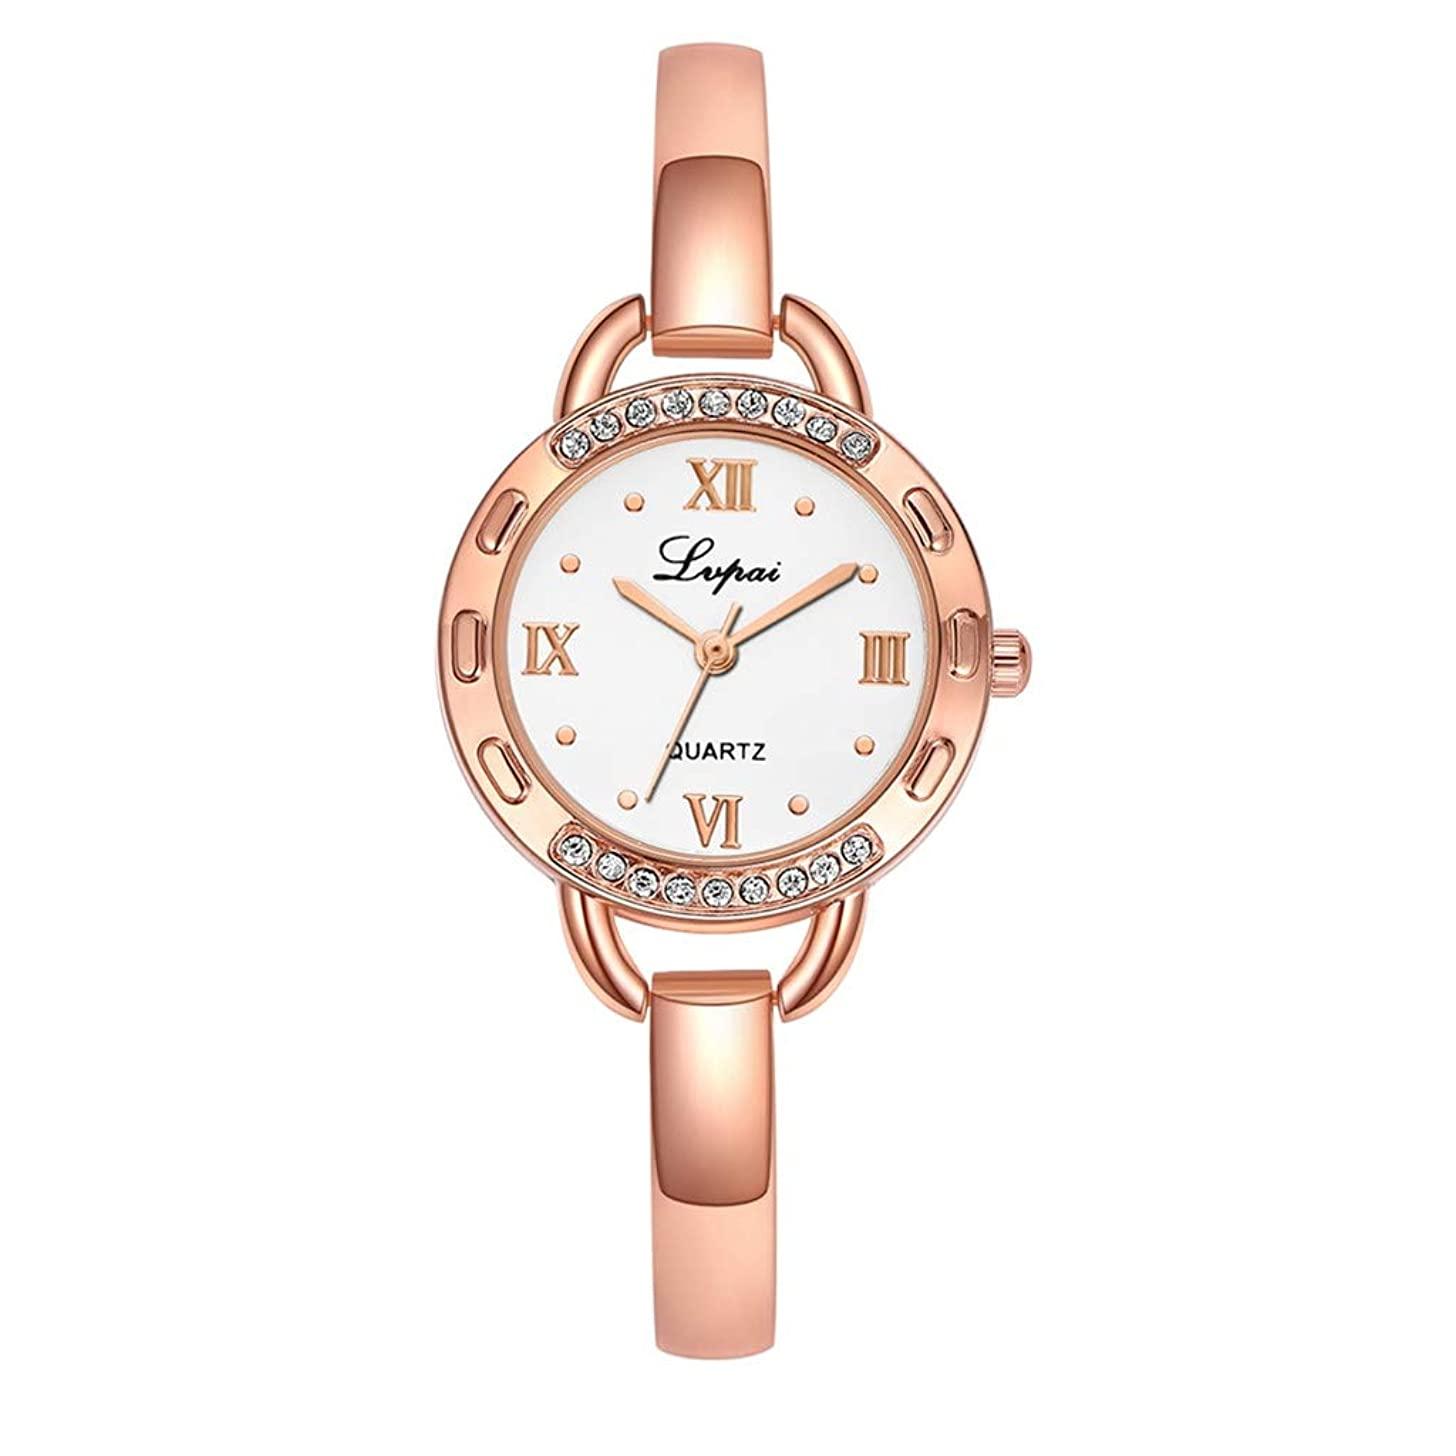 LUCAMORE Women's Exquisite Quartz Watch Roman Numeral Dial Stainless Steel Band Casual Business Wrist Watch